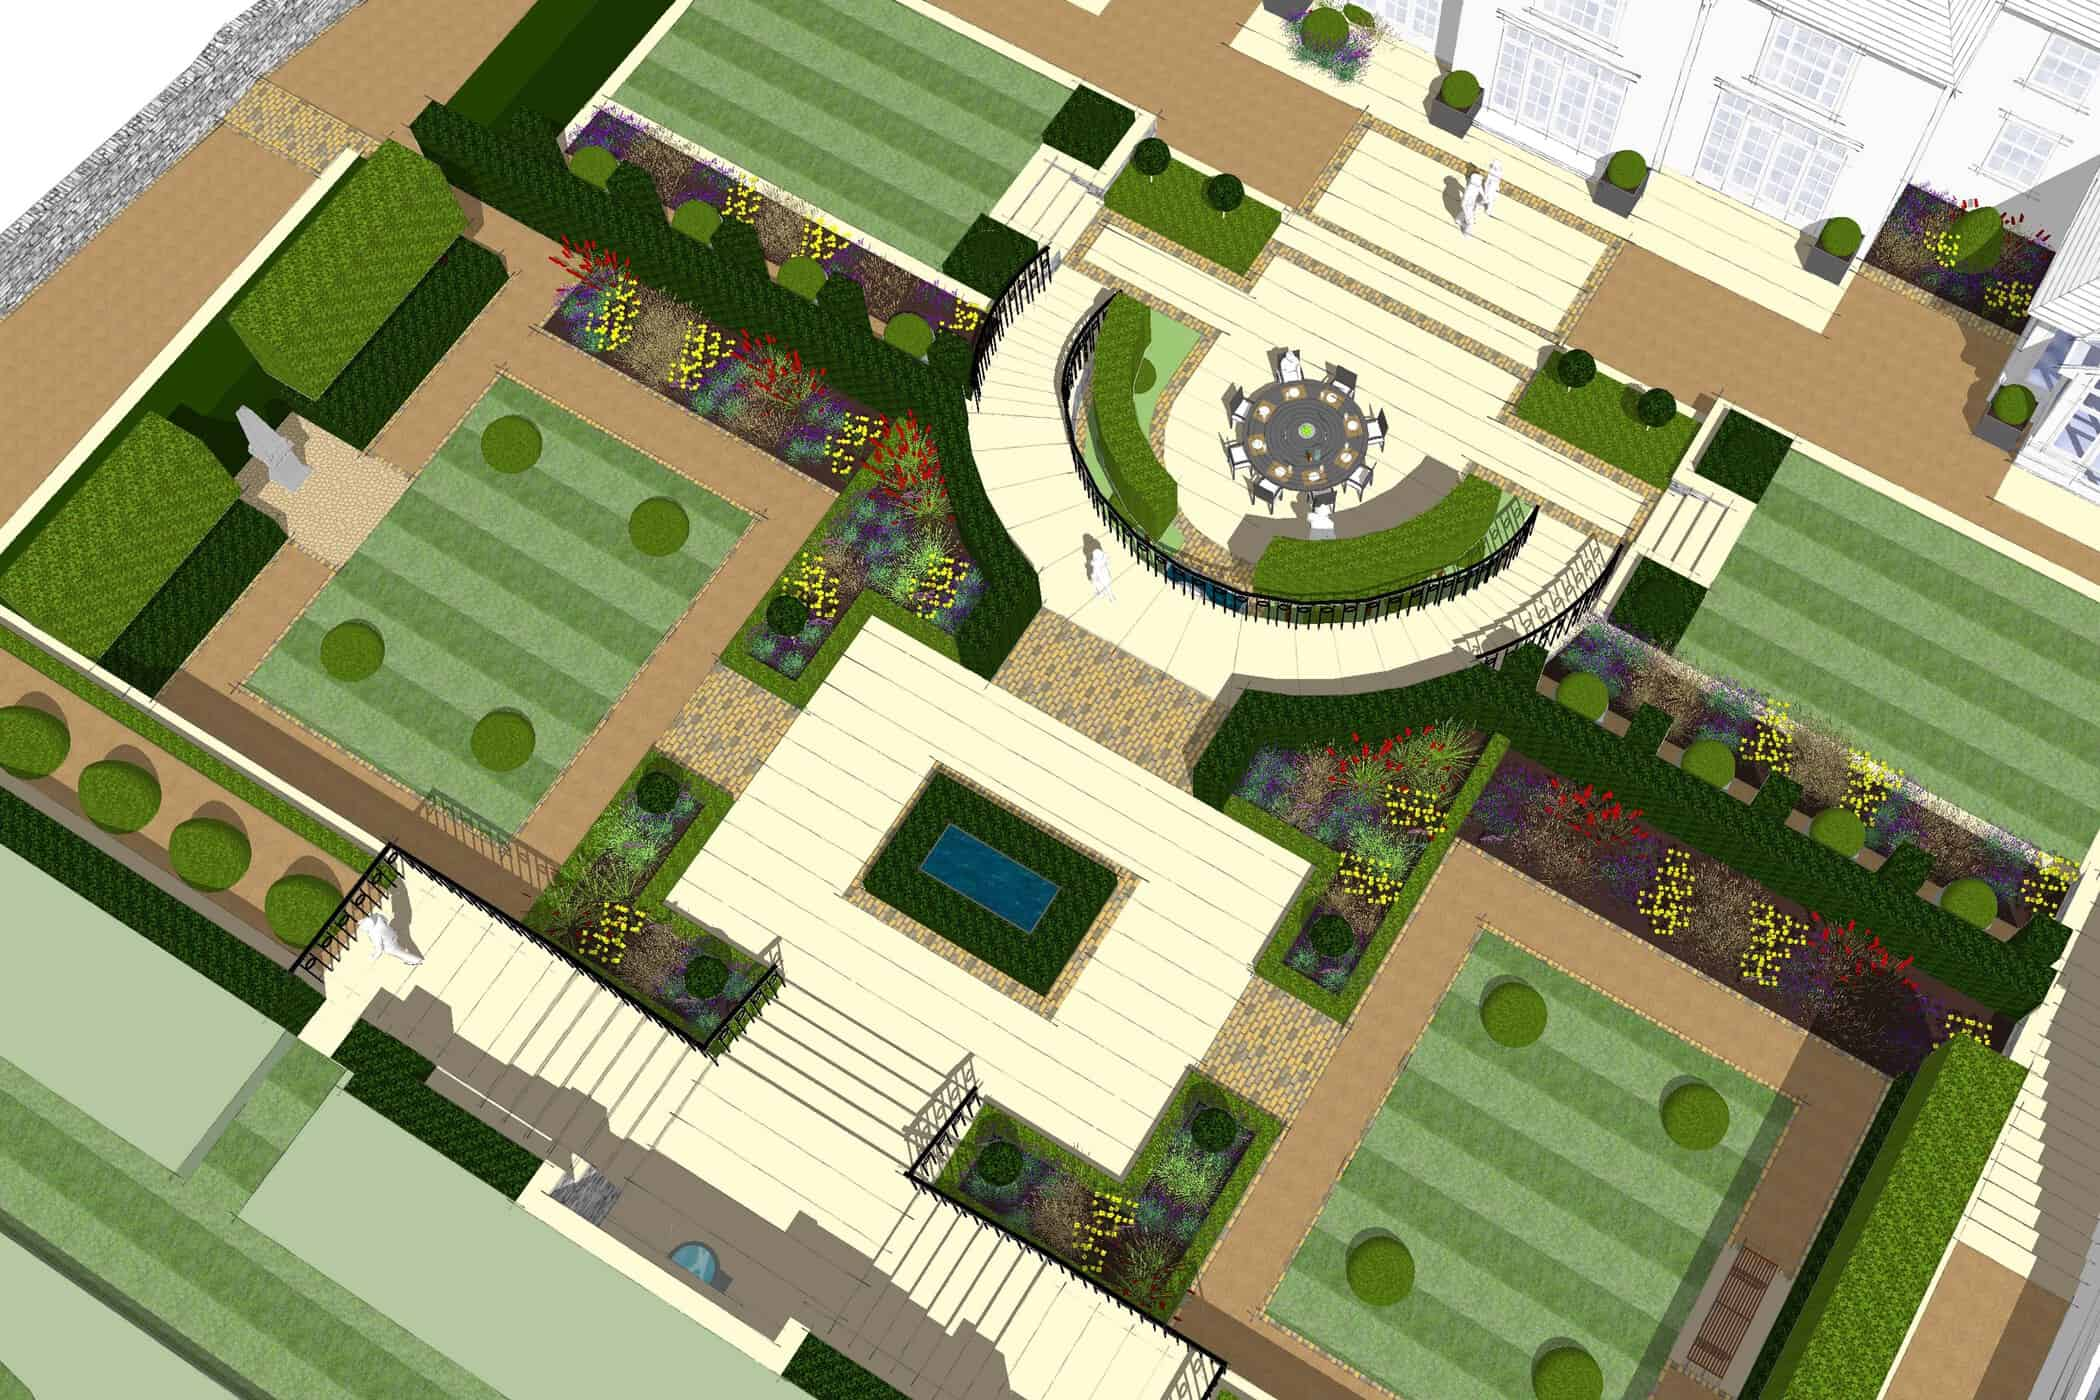 What is a garden designer?